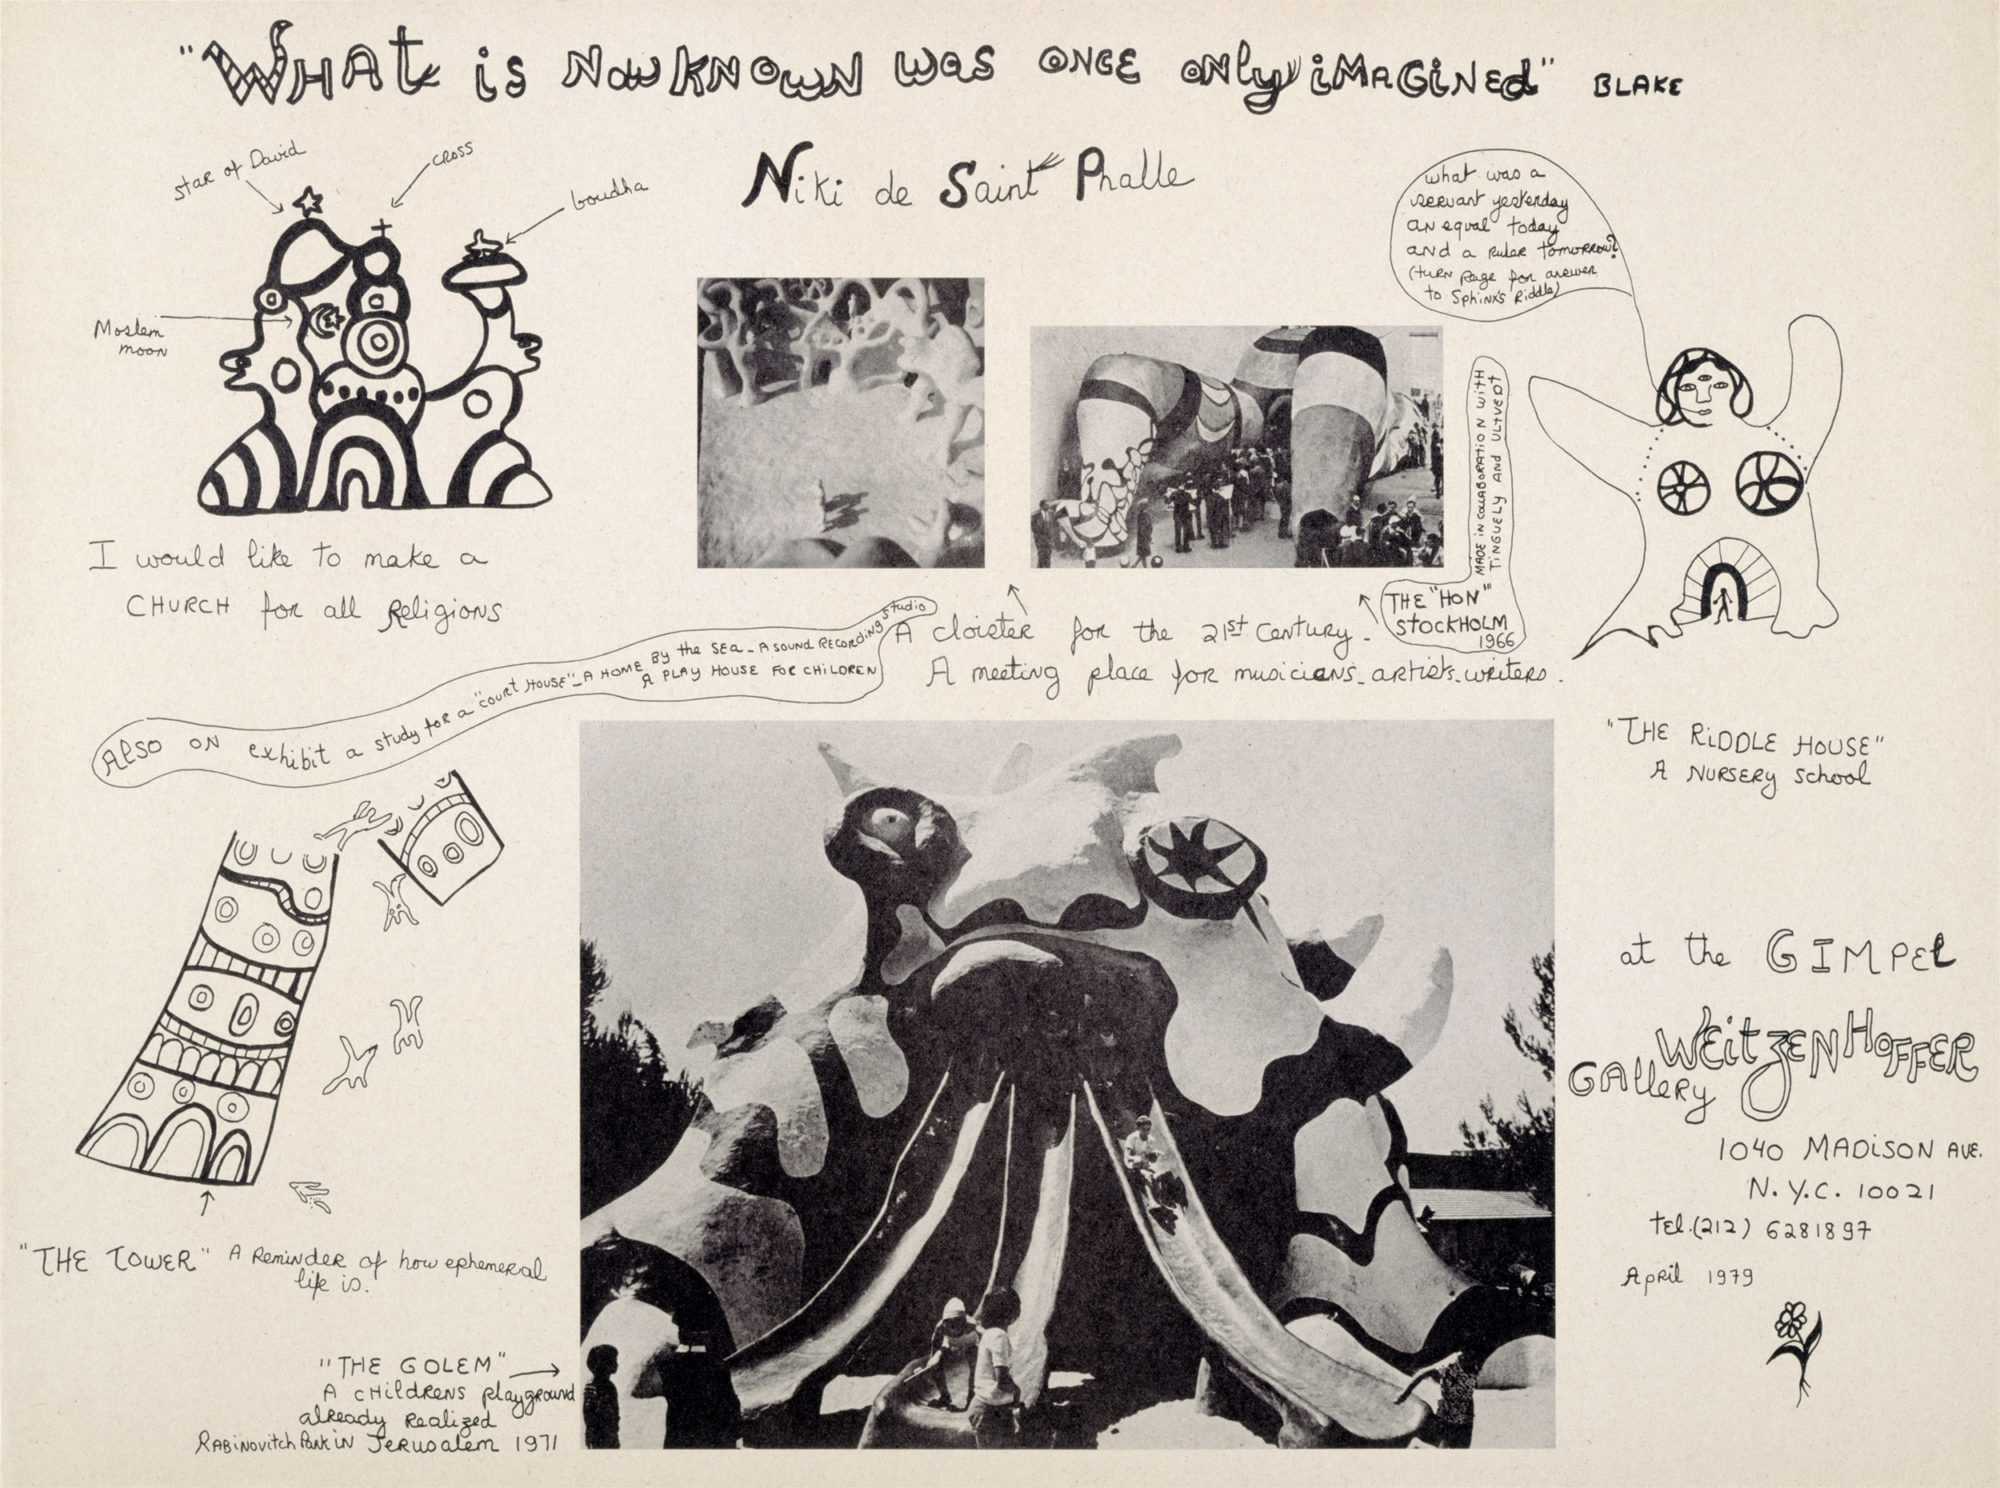 Niki de Saint Phalle. What is now known was once only imagined. 1979.